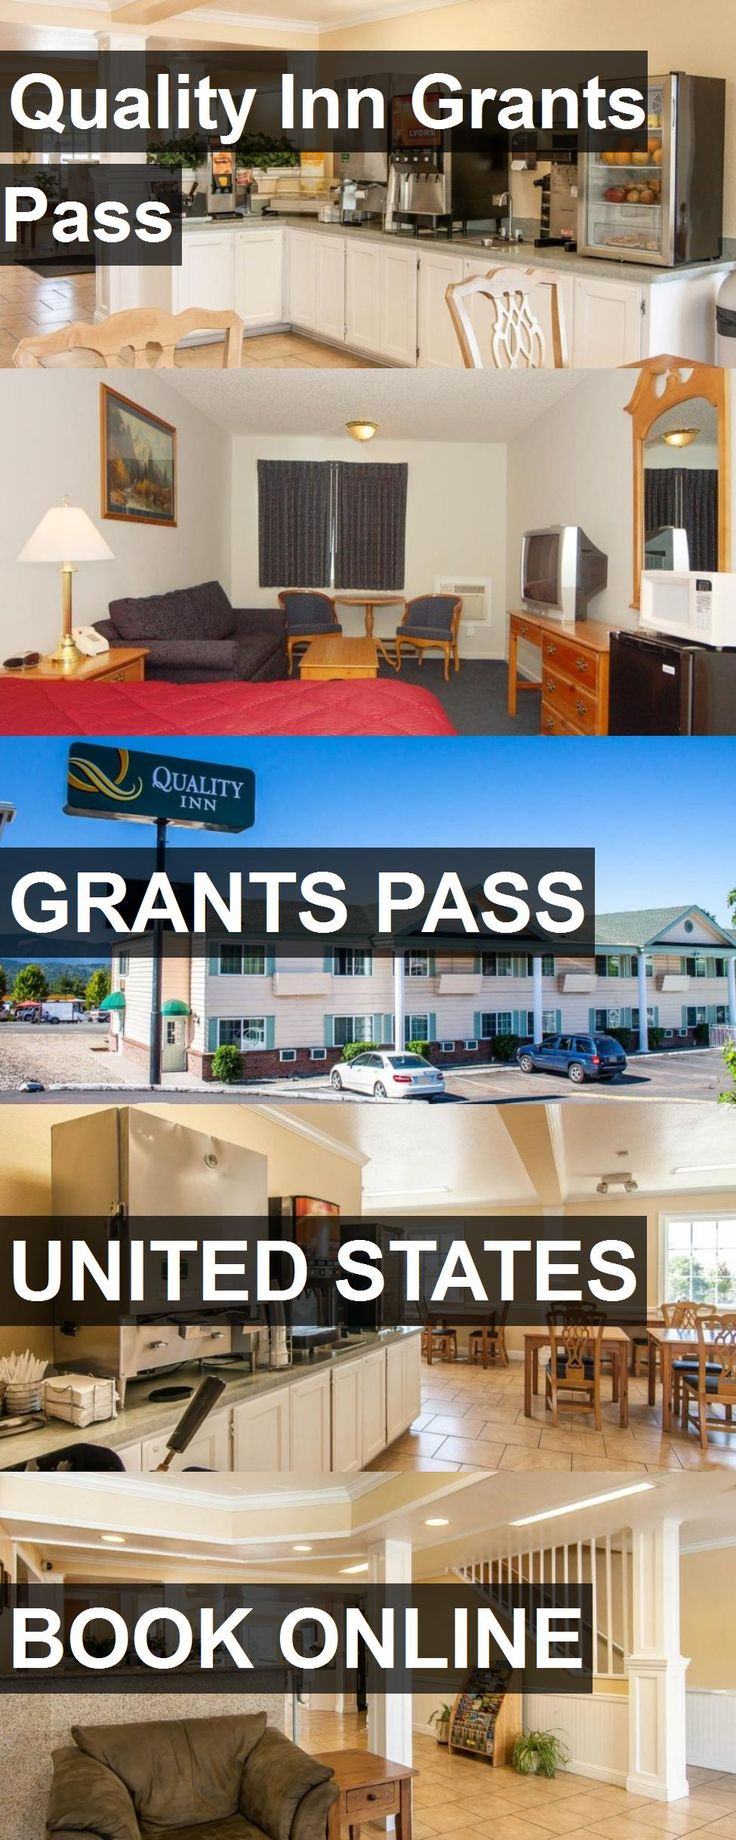 Hotel Quality Inn Grants Pass in Grants Pass, United States. For more information, photos, reviews and best prices please follow the link. #UnitedStates #GrantsPass #travel #vacation #hotel